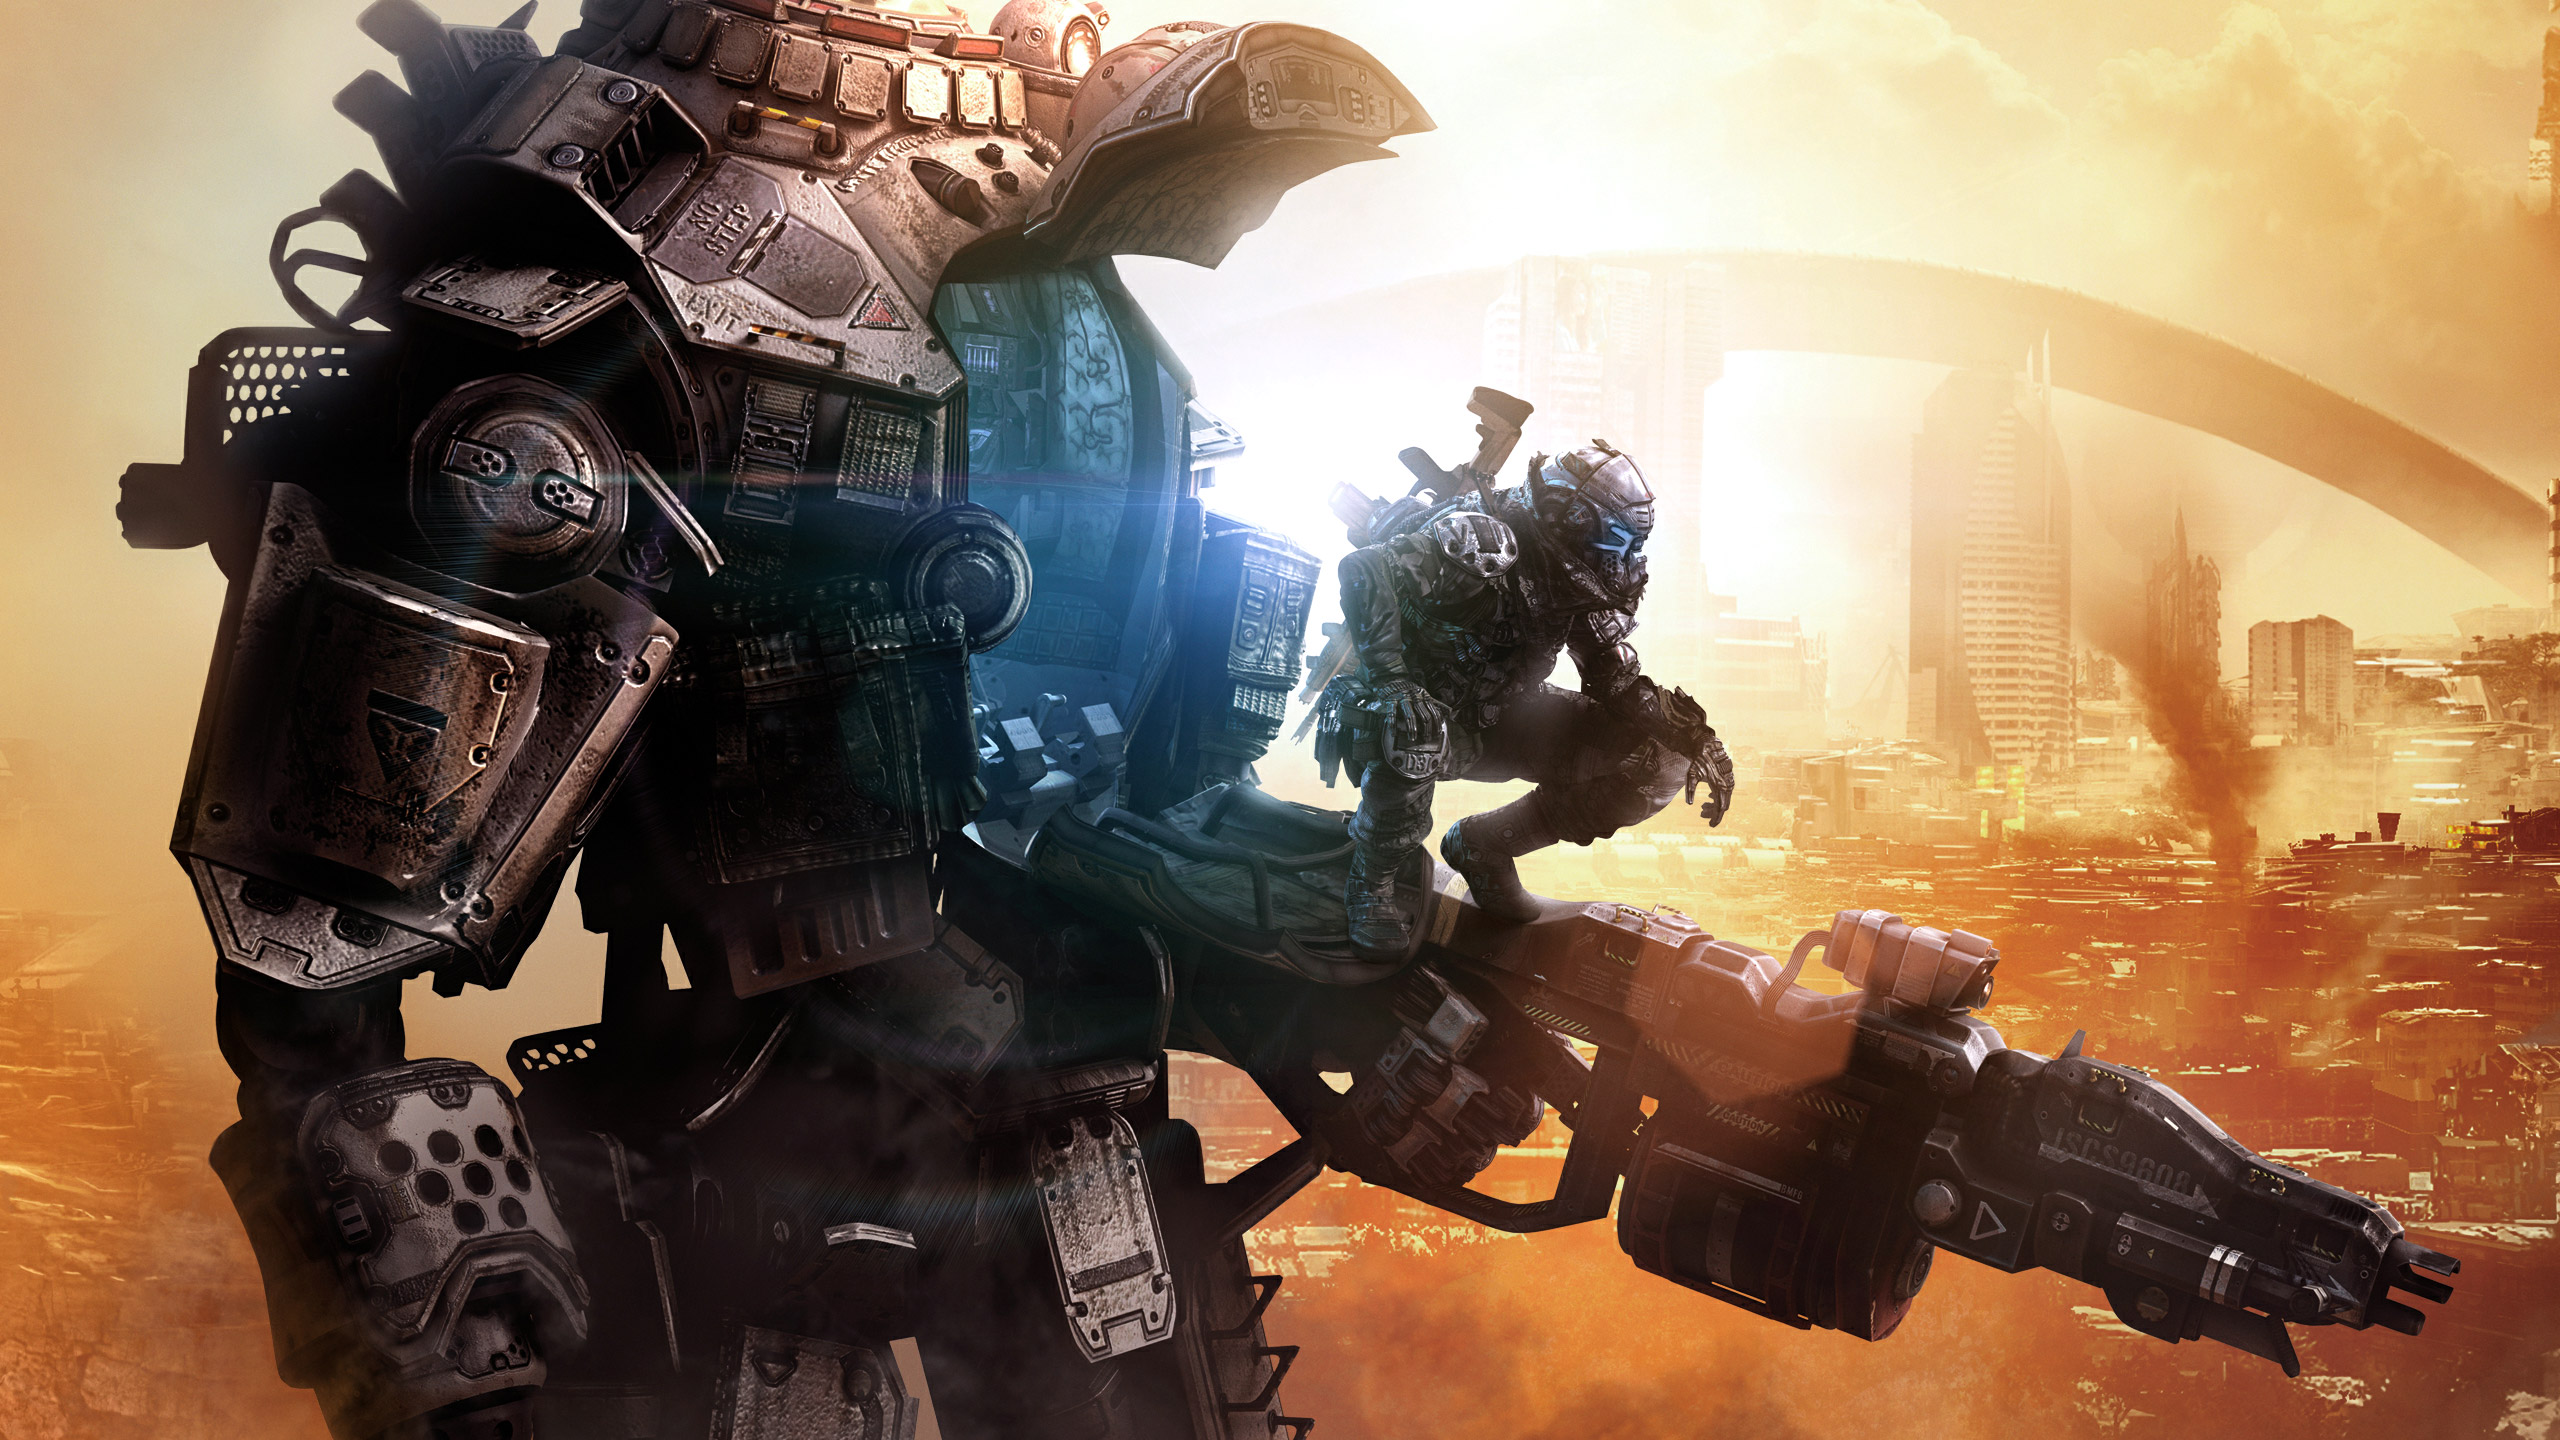 Dystopia titanfall 2 hd games 4k wallpapers images - Epic titanfall 2 wallpapers ...